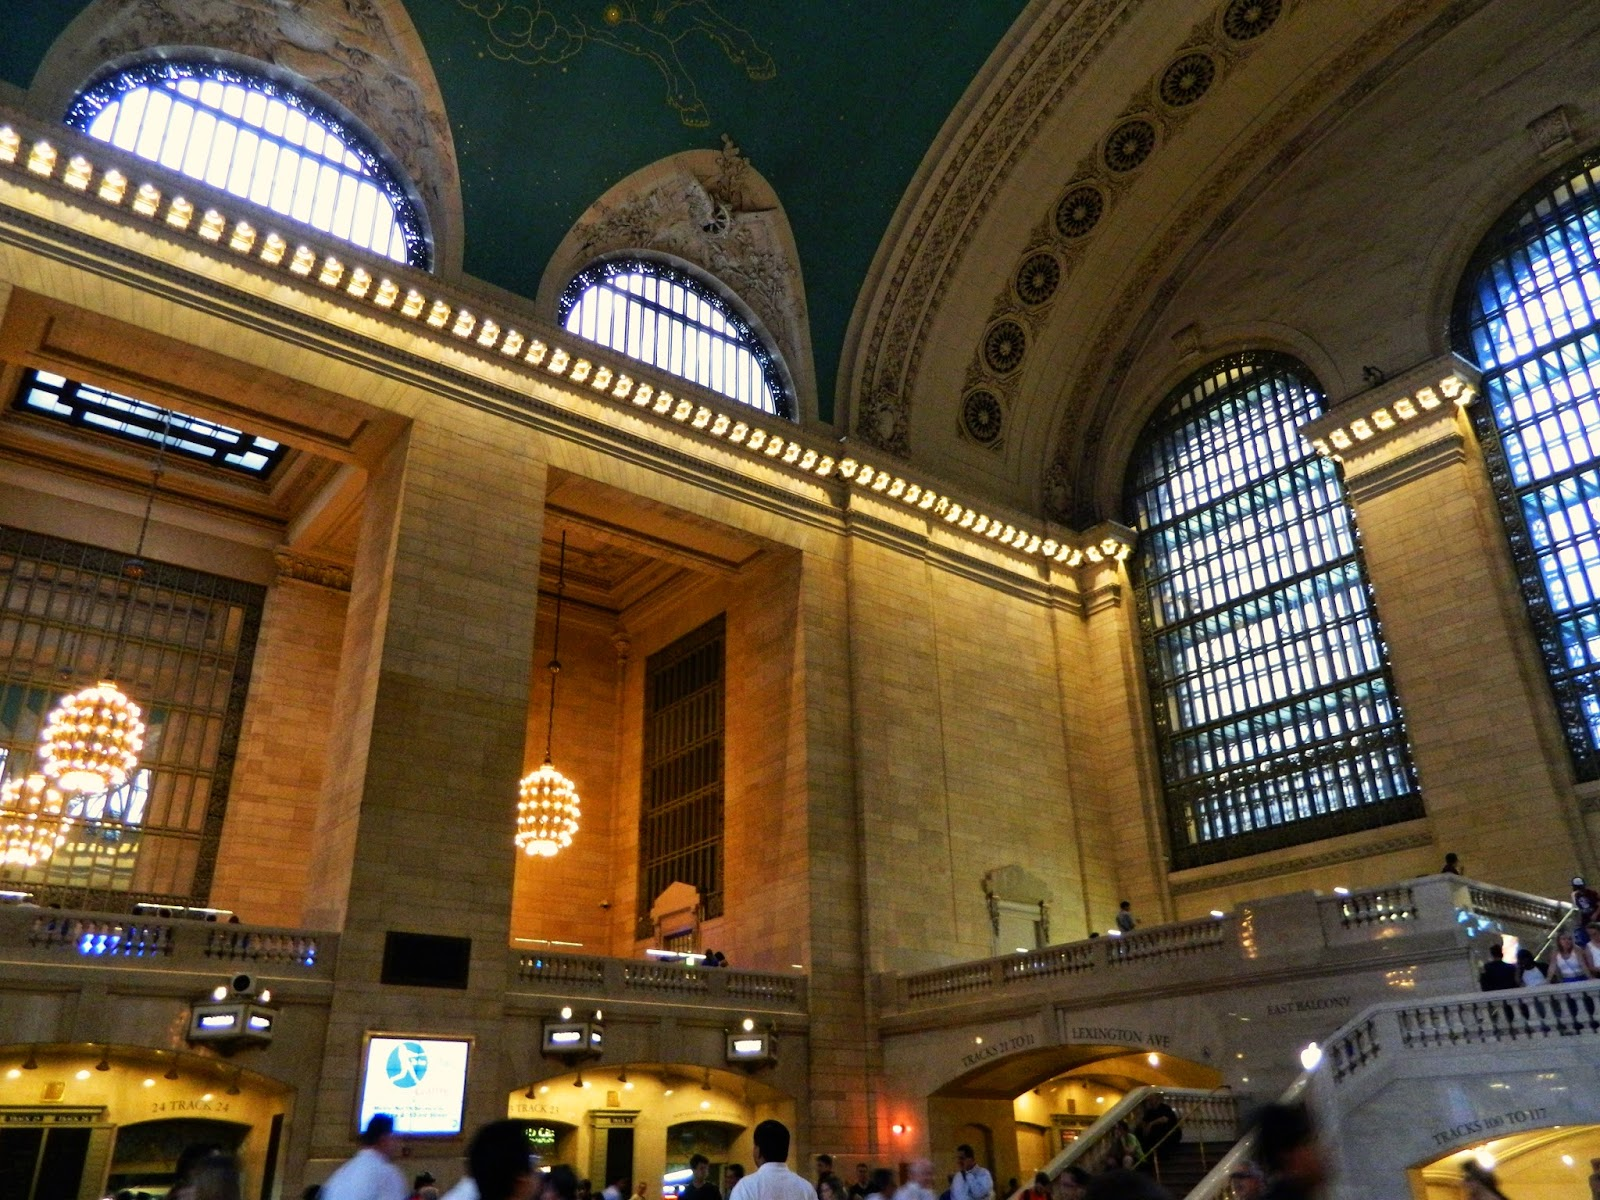 new york city grand central station inside people stairs windows architecture